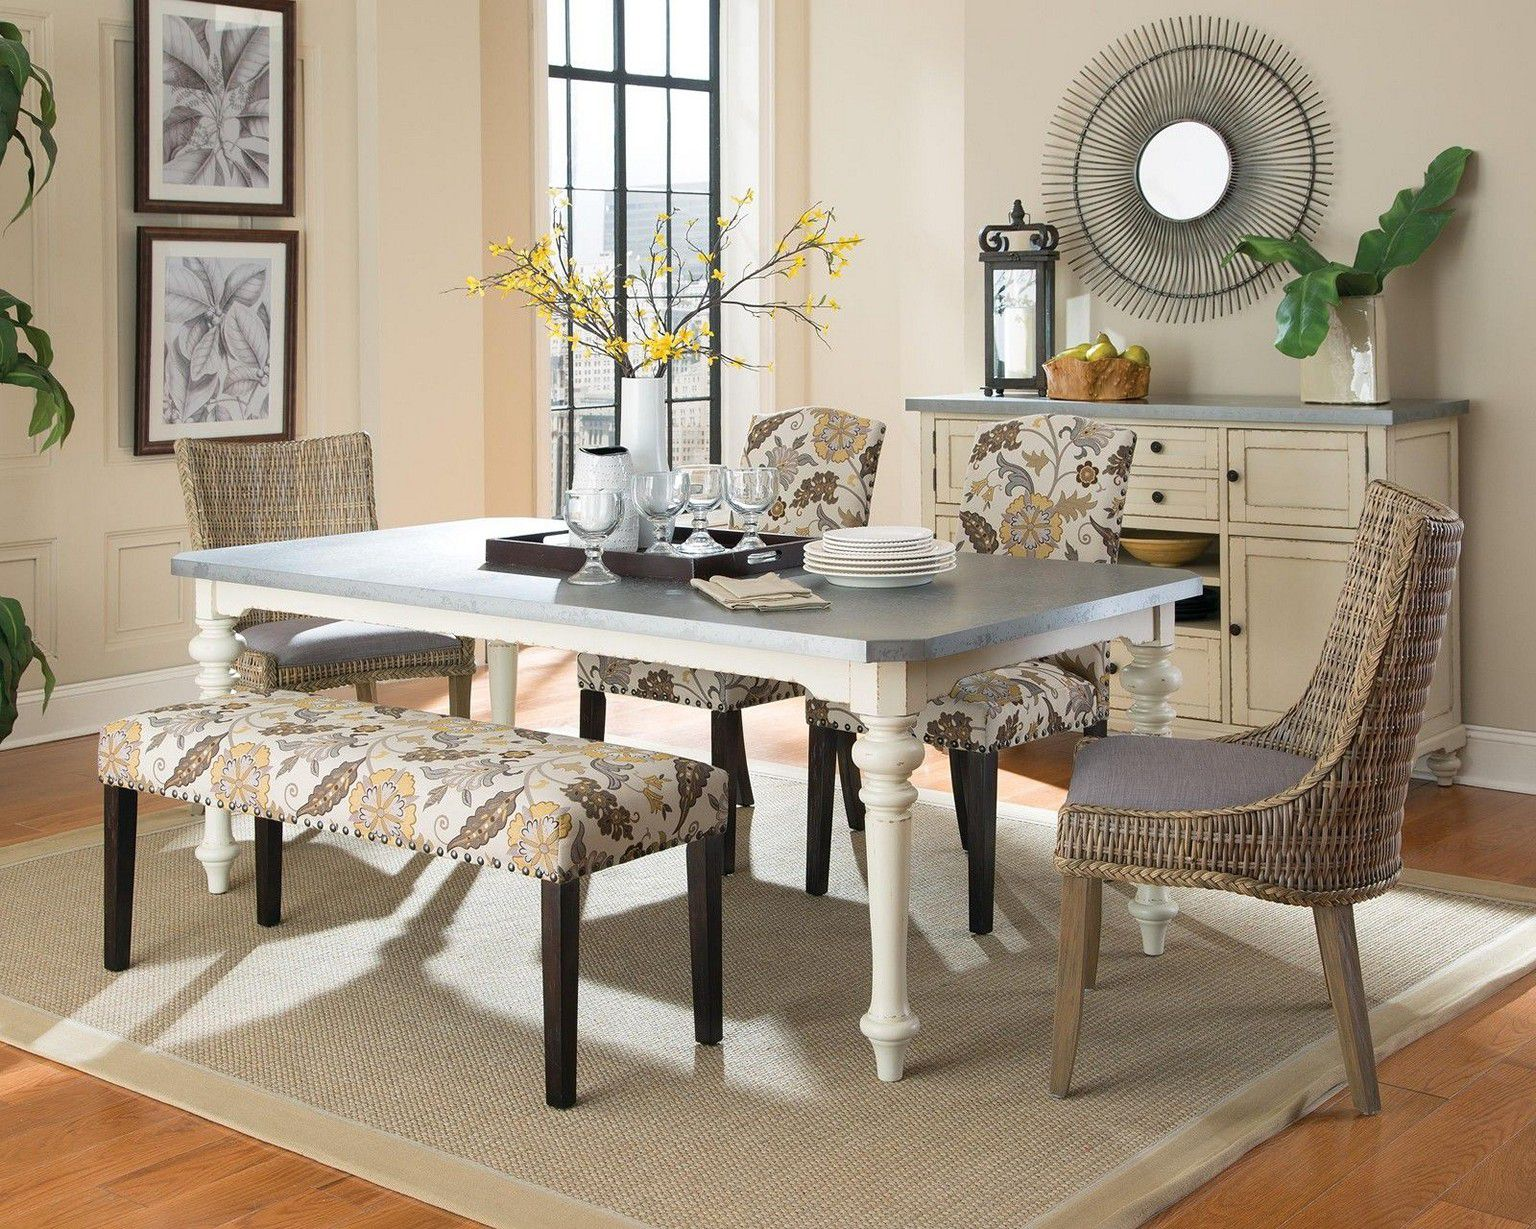 Combine White Table and Comfy Bench in Rustic Dining Room Decorating Ideas with Grey Carpet